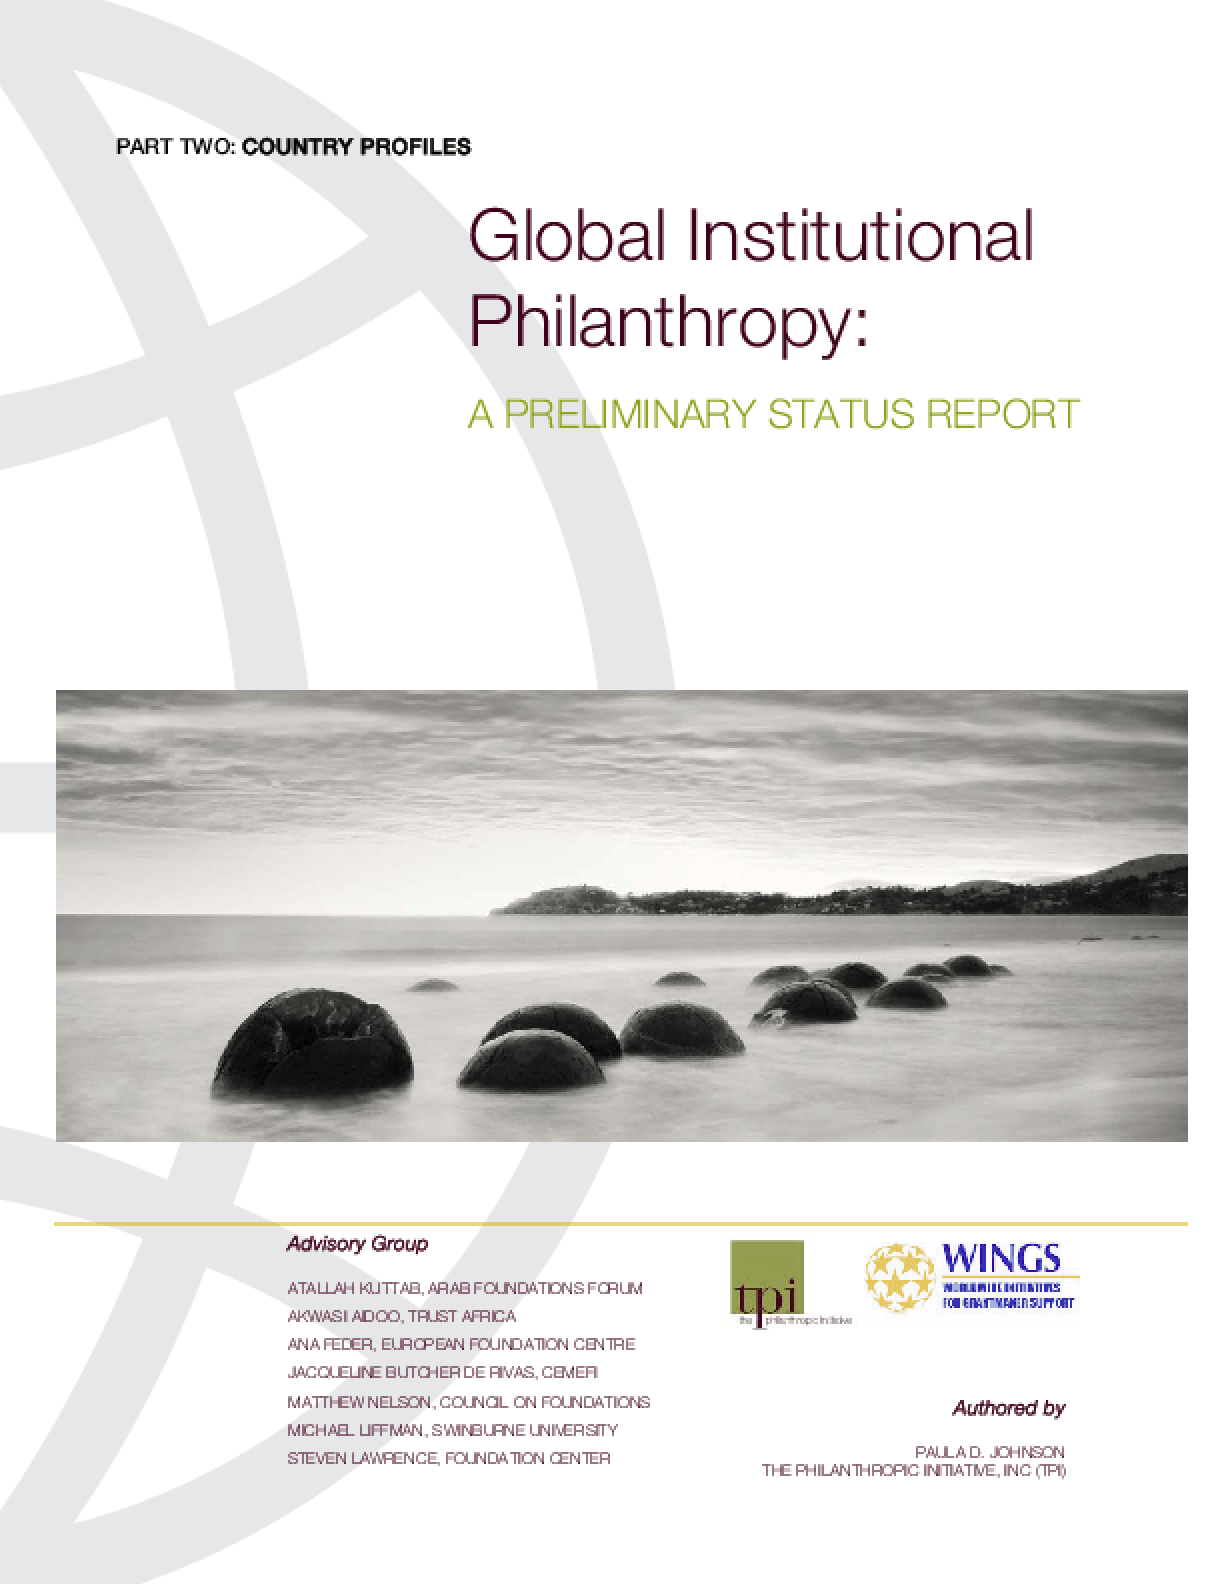 Global Institutional Philanthropy: A Preliminary Status Report - Part 2, Country Profiles